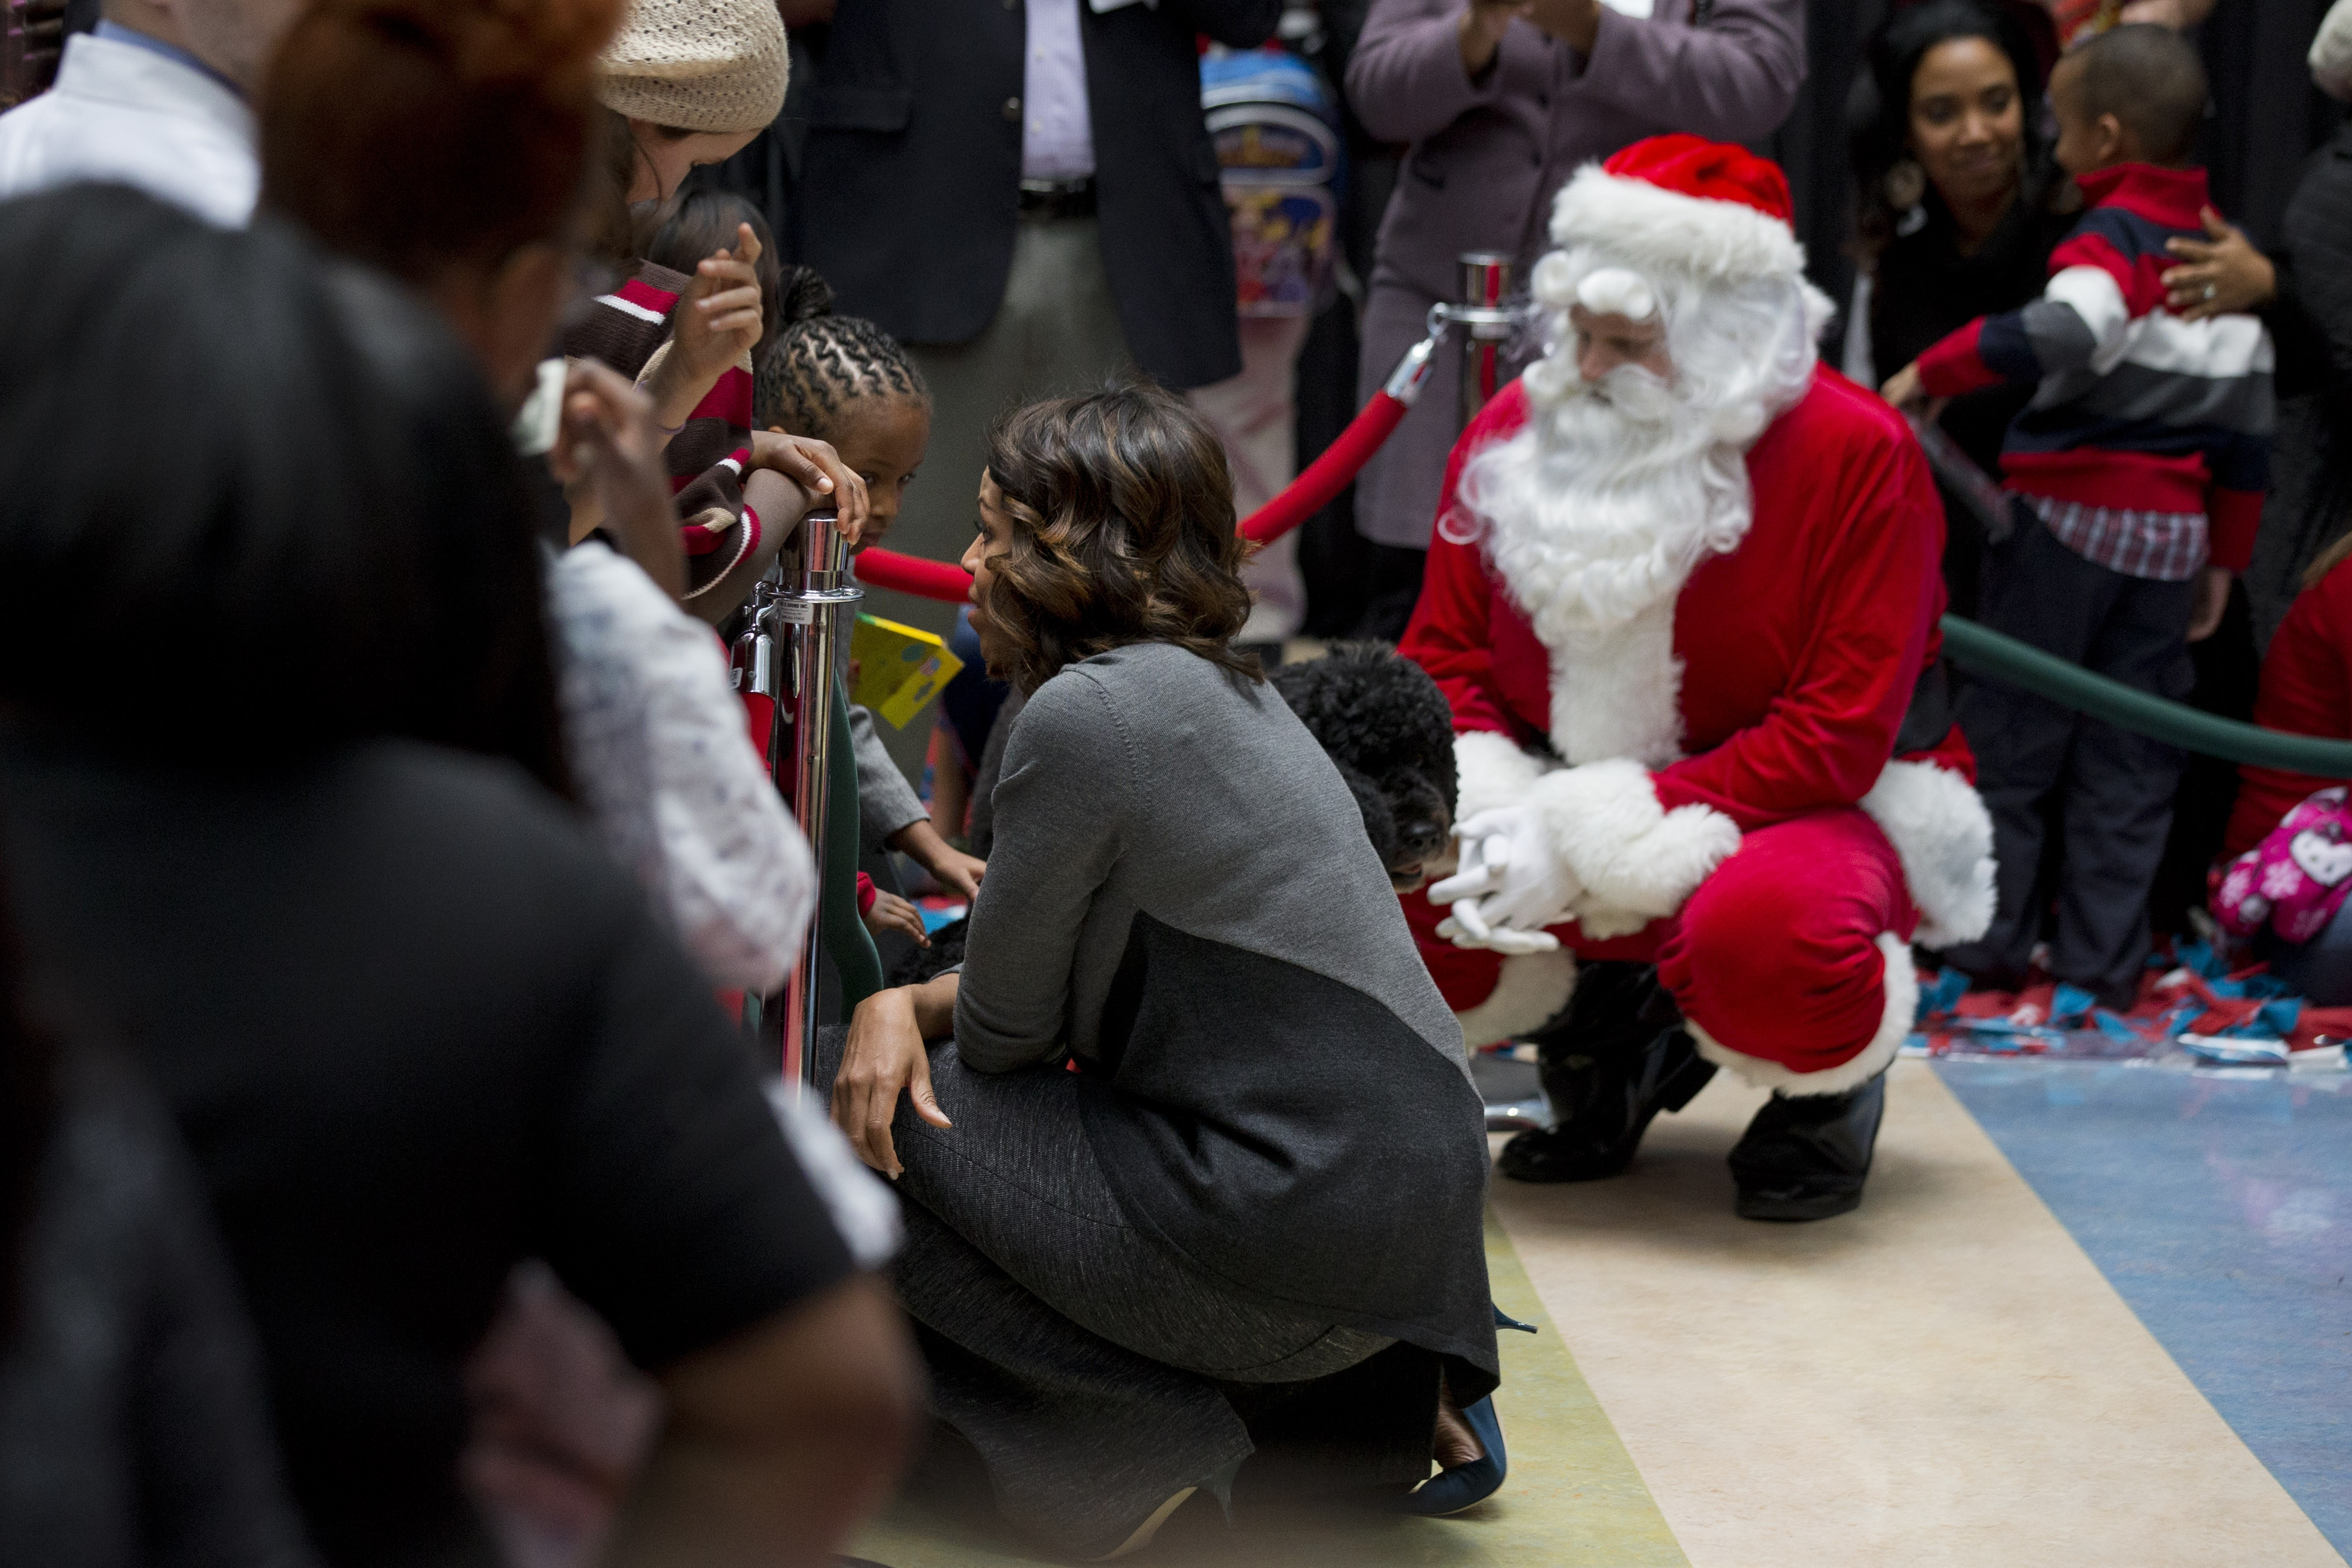 First lady Michelle Obama, foreground, and Santa got down to kids' level after reading them a holiday story at Children's Hospital in Washington on Monday.